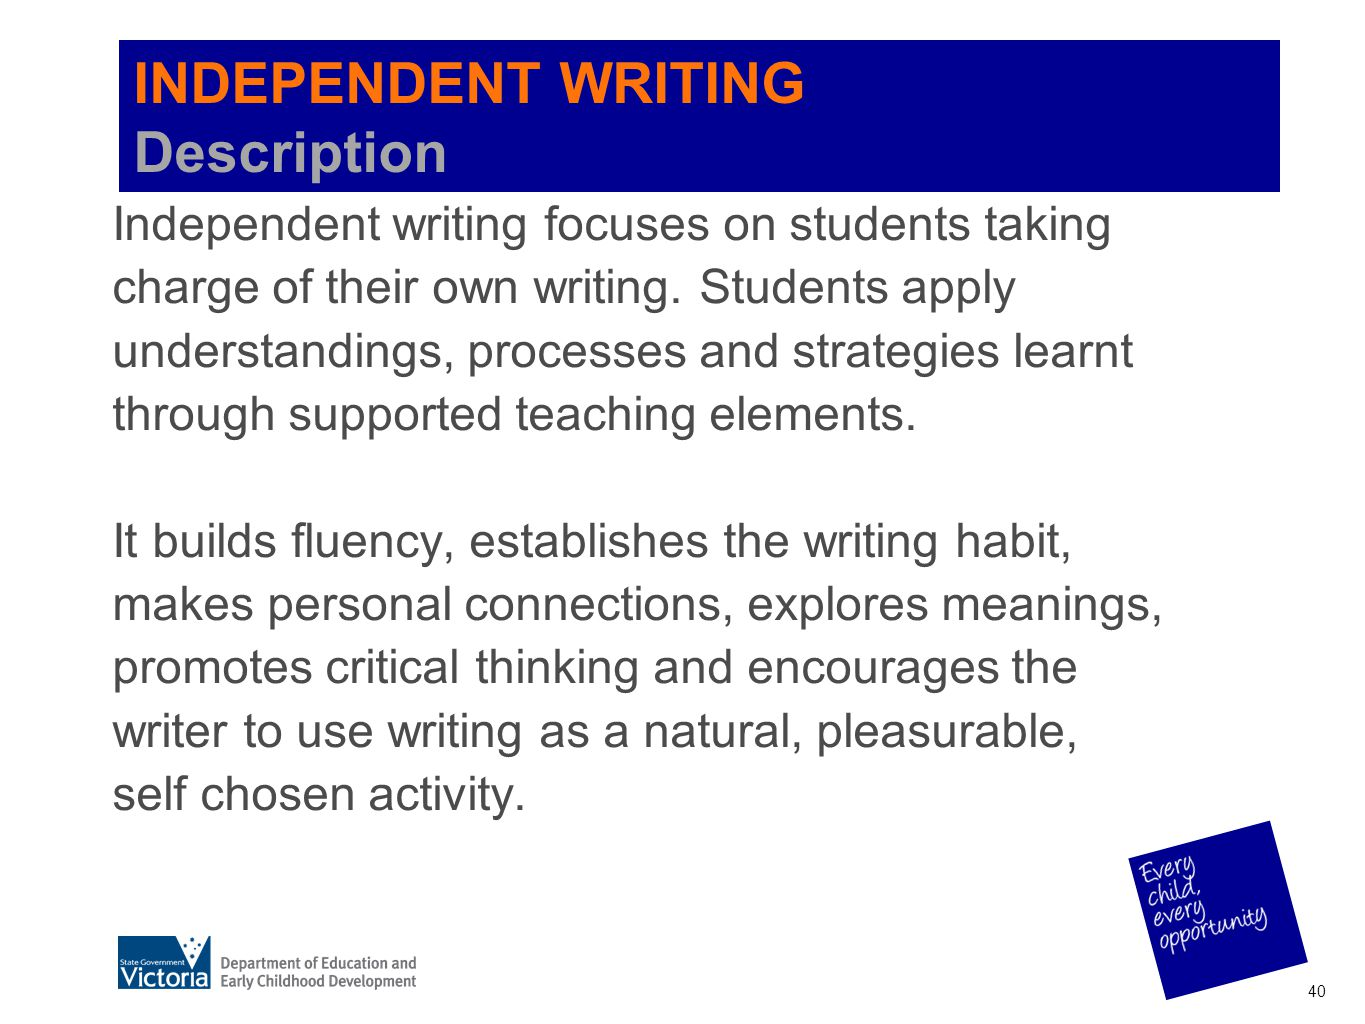 INDEPENDENT WRITING Description